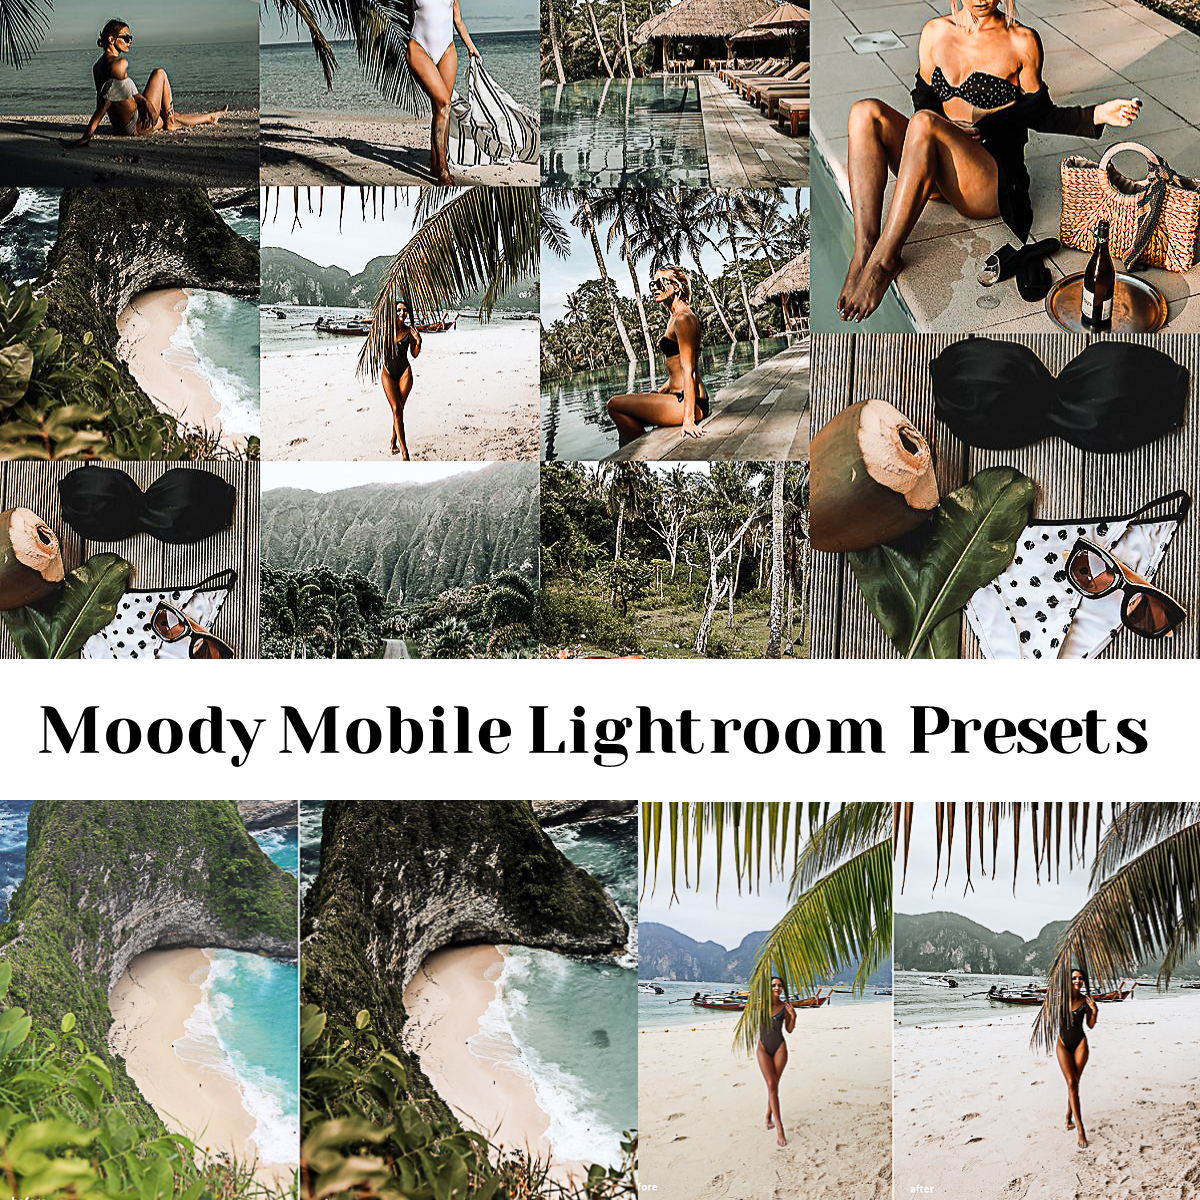 Moody Mobile Lightroom Presets | Free download